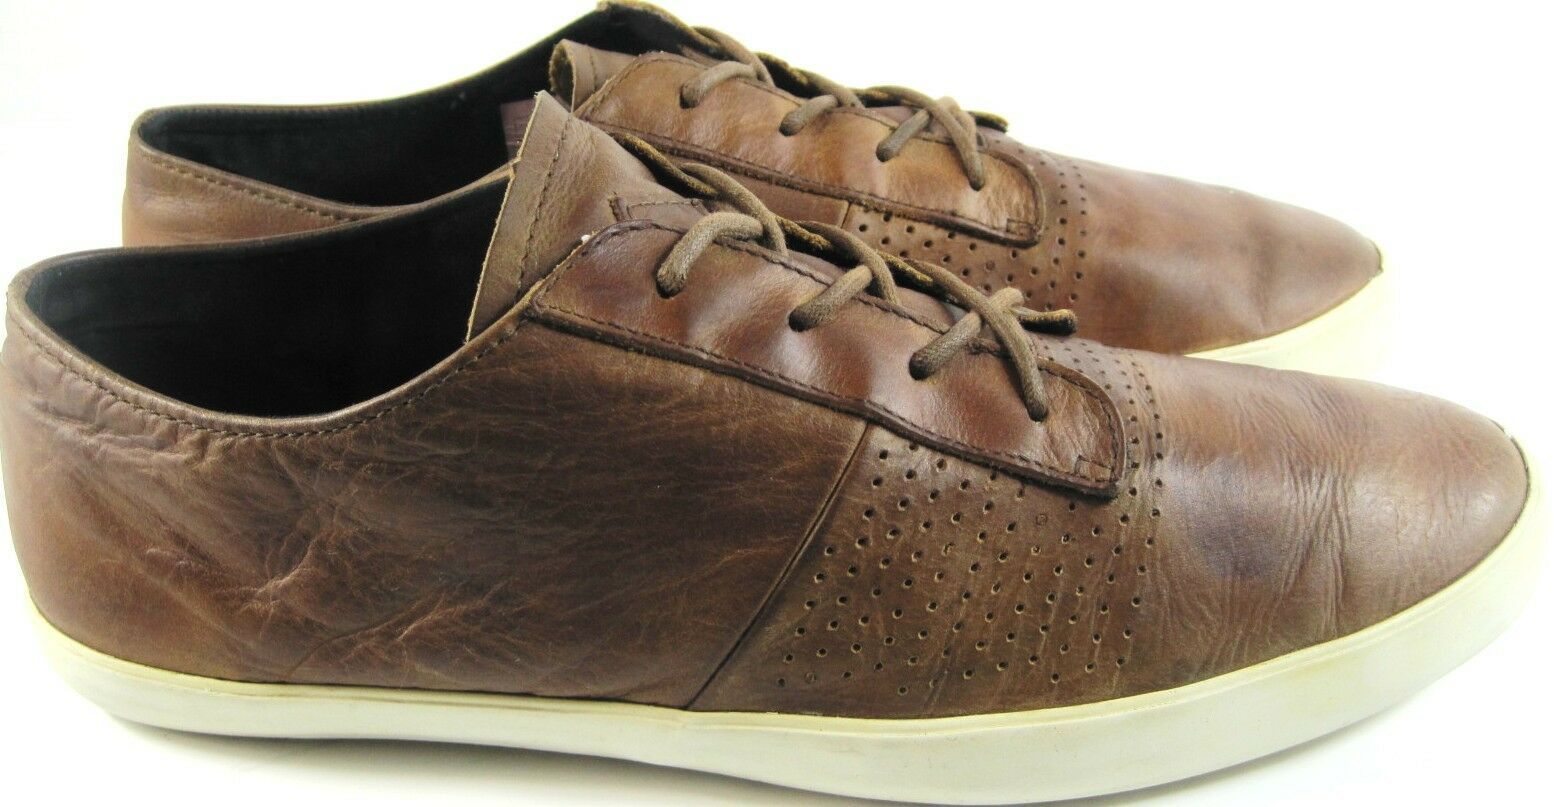 Reef Uomo Athletic Shoes Pelle Size 10 Brown Rubber Soles Low Tops.